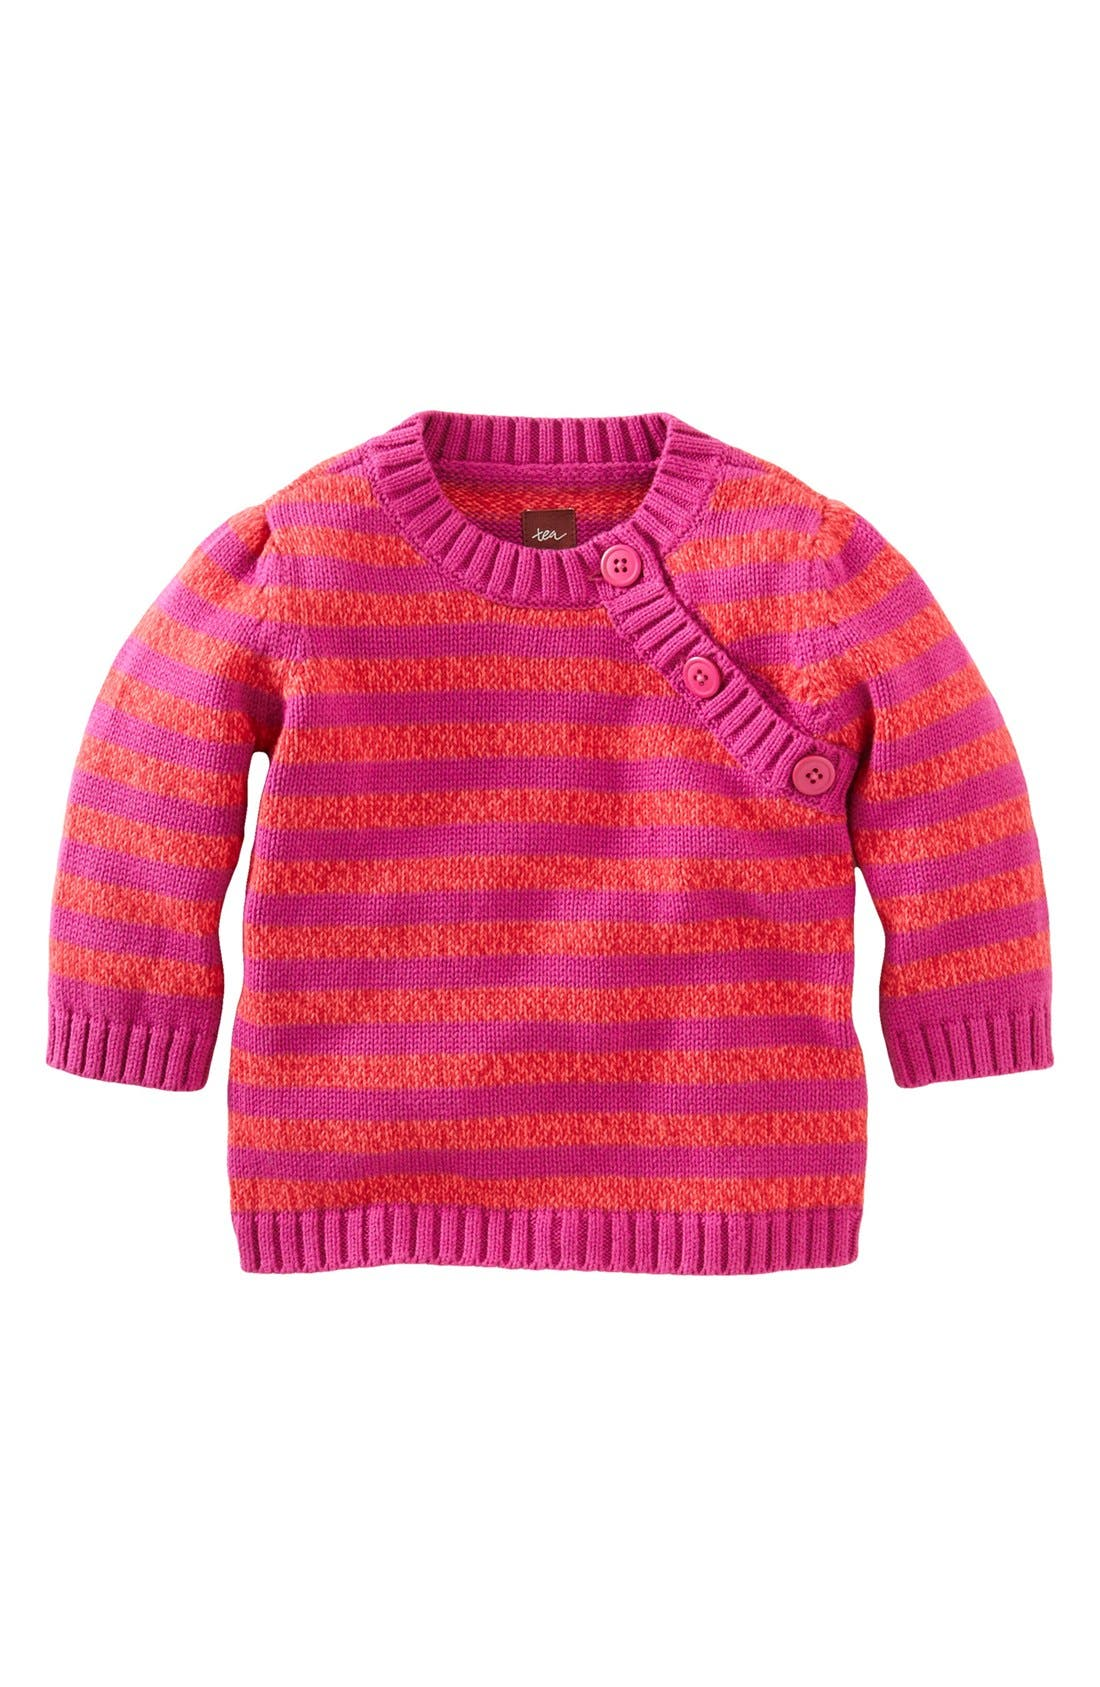 Alternate Image 1 Selected - Tea Collection Marled Stripe Sweater (Little Girls & Big Girls)